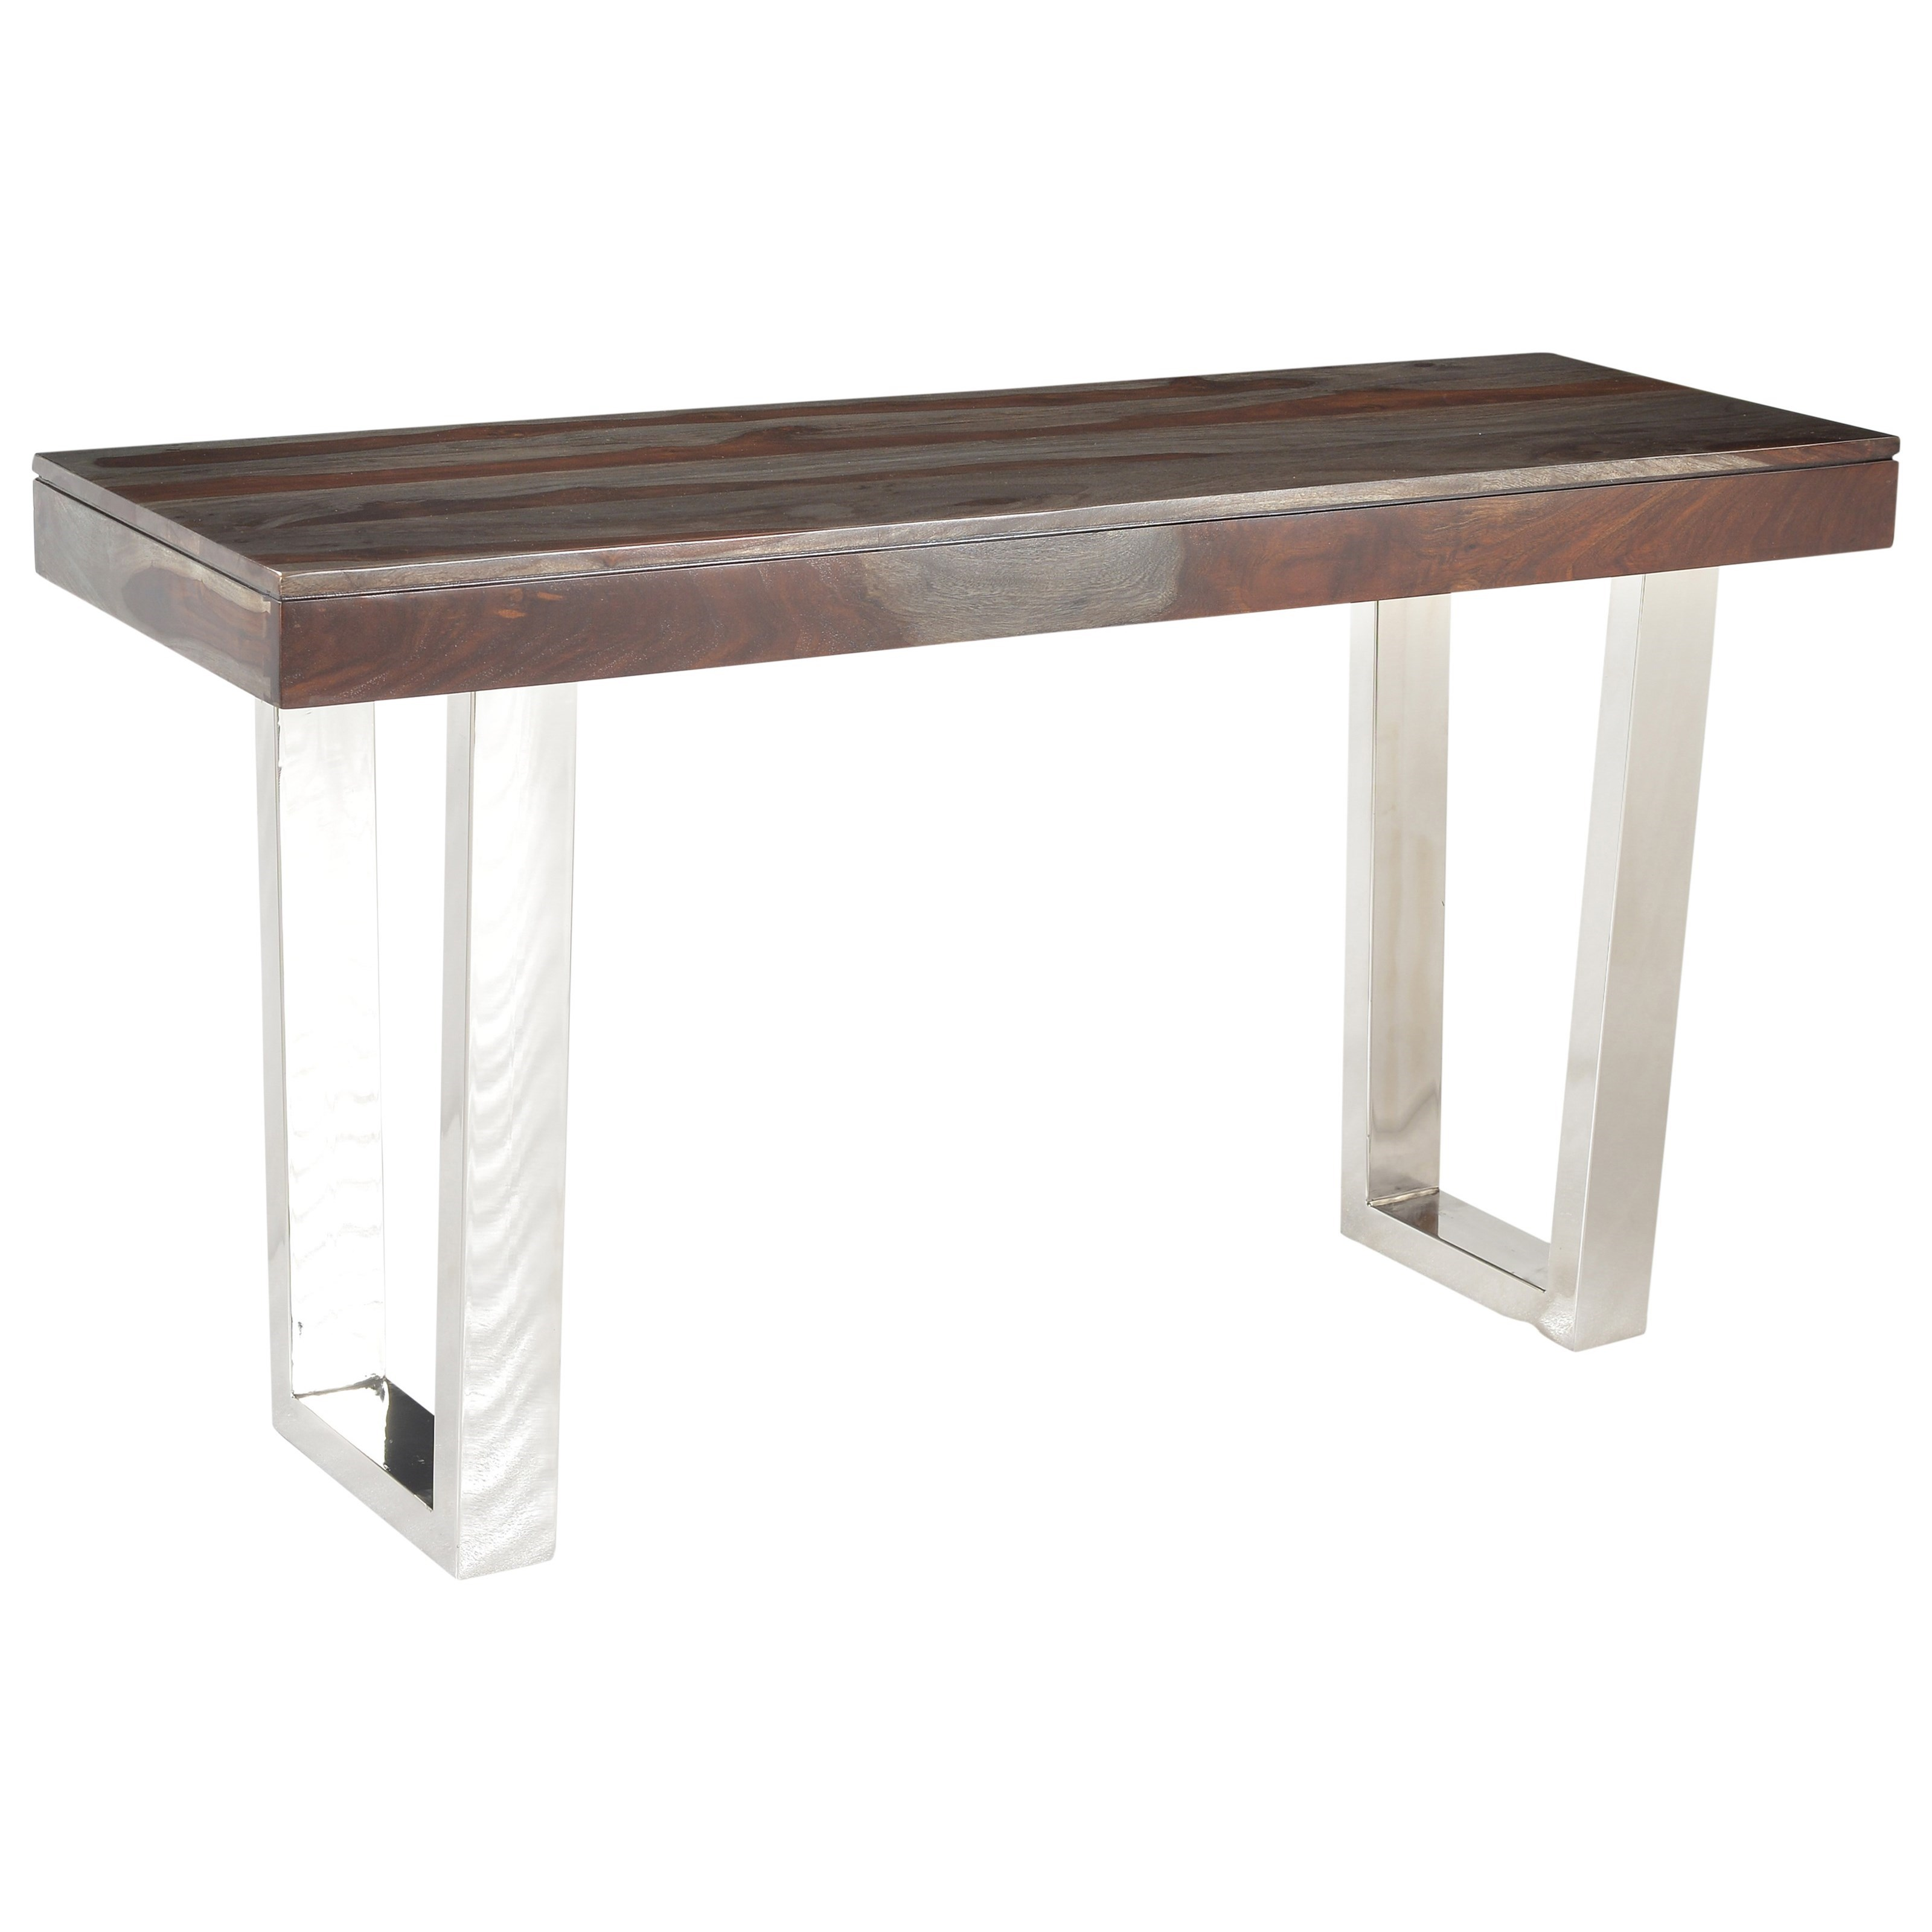 Coast to Coast Imports Cosmopolitan Console Table - Item Number: 93454